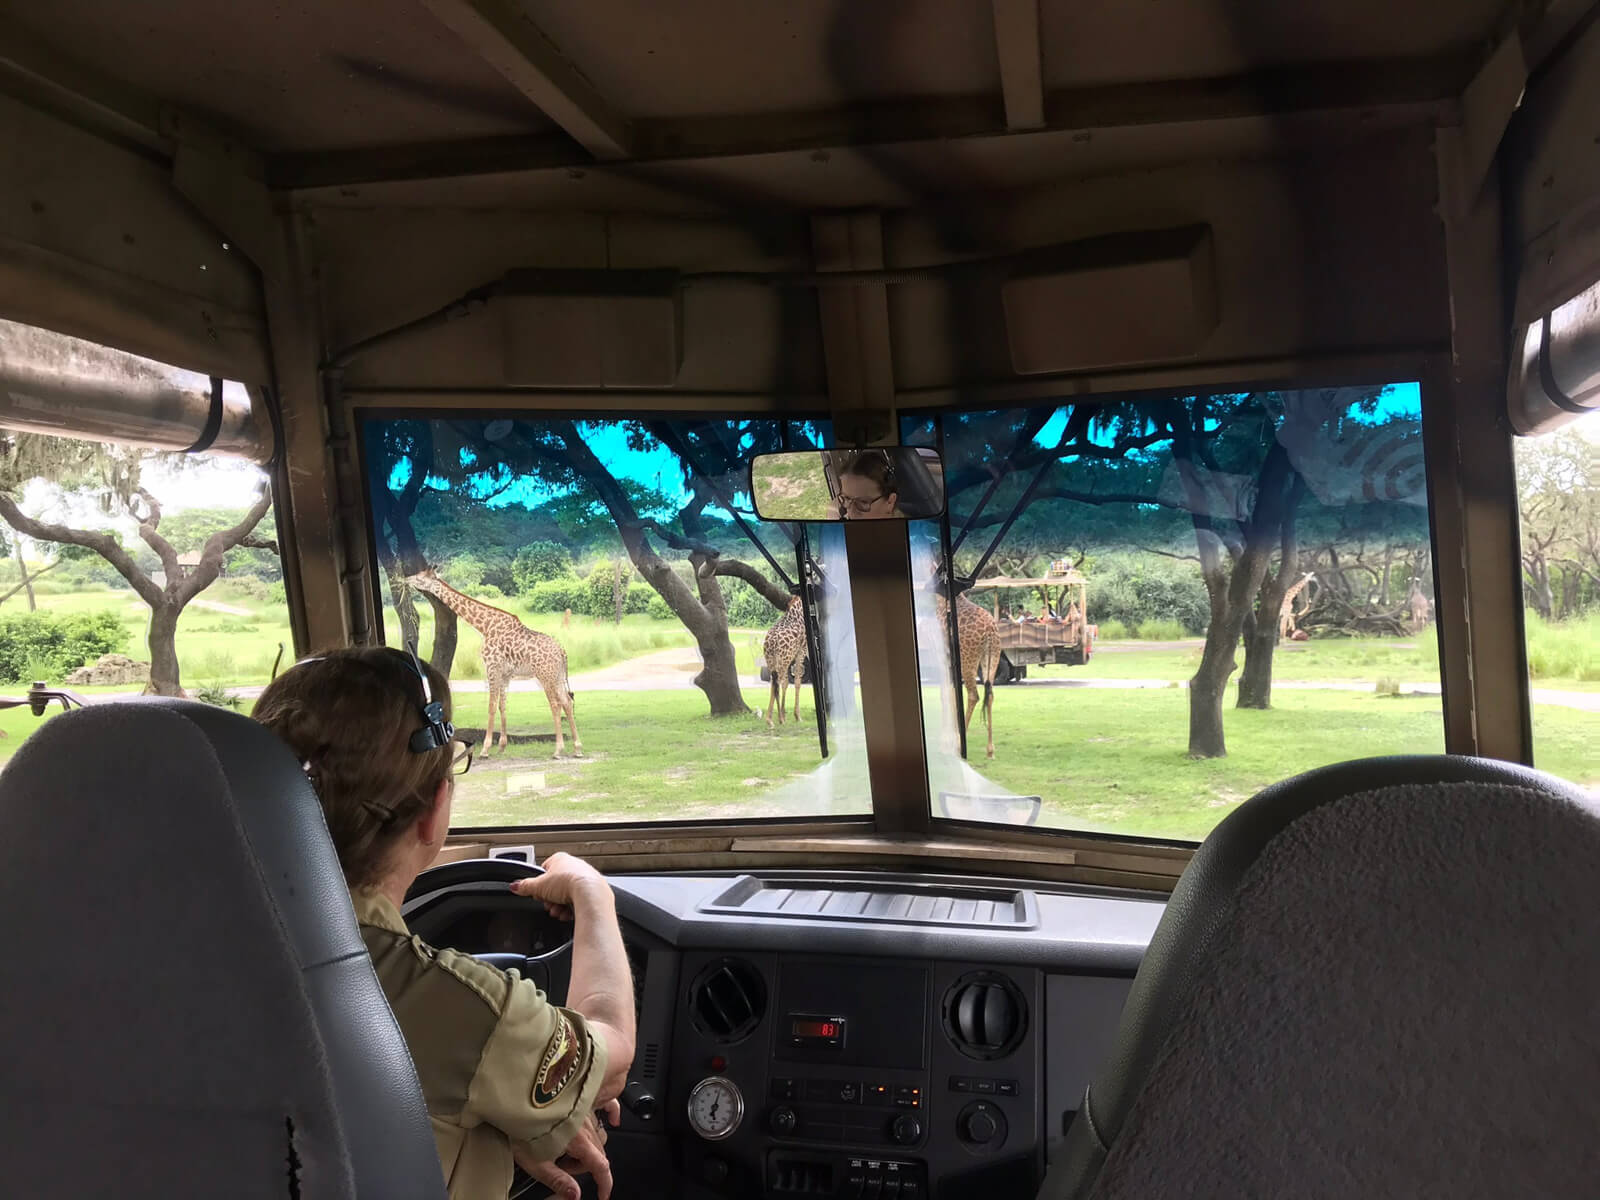 The inside of a vehicle looking out the front window. There is a woman in the driver's seat on the left. Giraffes can be seen through the window